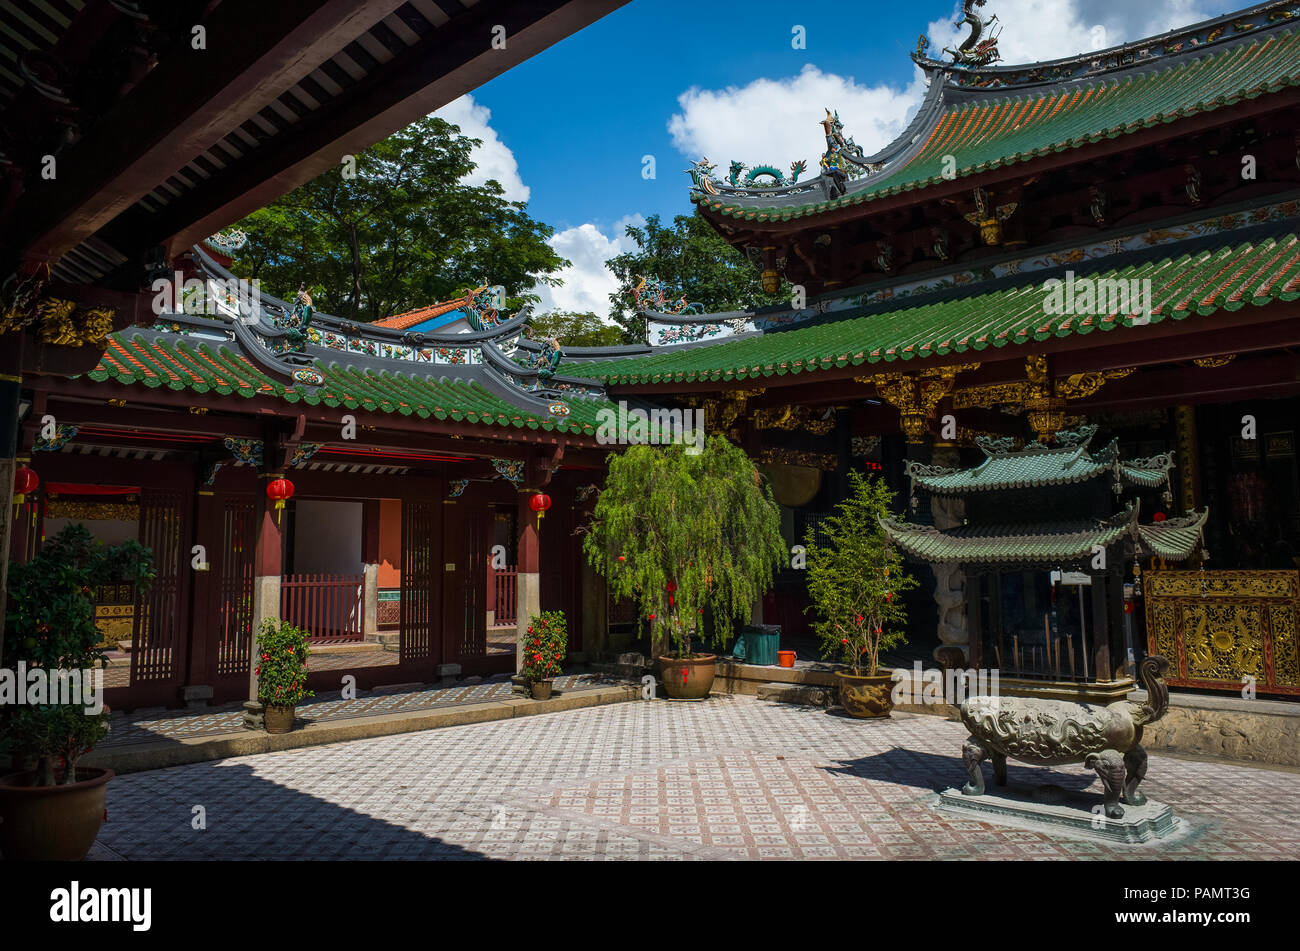 Singapore, Singapore - May 04, 2017: Courtyard at the ornate Thian Hock Keng Temple on Telok Ayer Street. It's the oldest and most sacred Hokkien cent - Stock Image